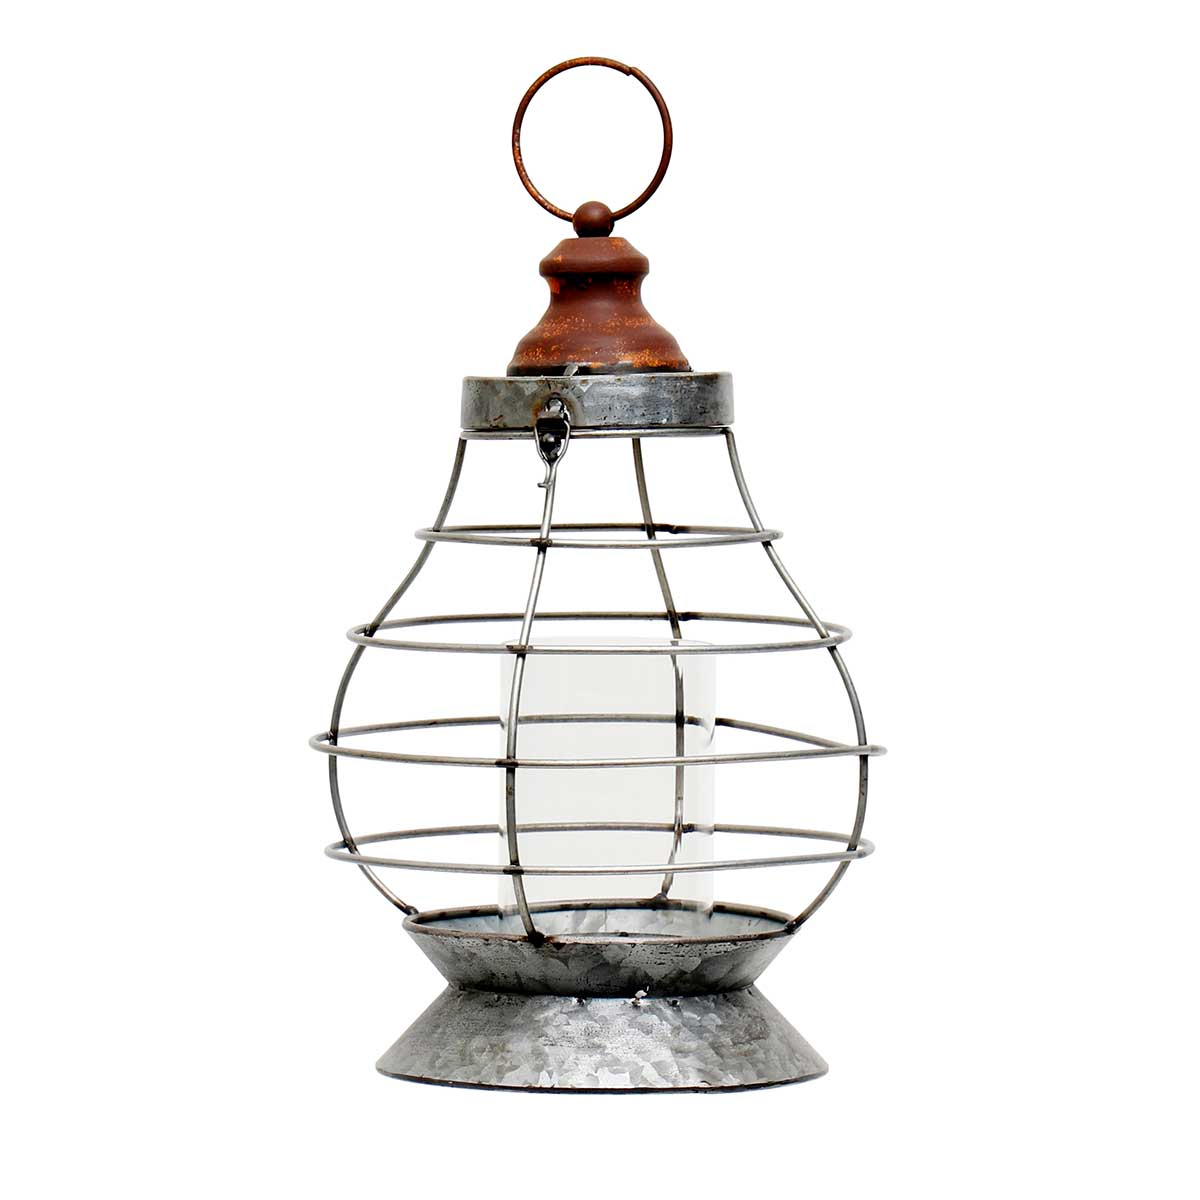 "METAL HANGING KEROSENE STYLE LANTERN WITH GLASS CHIMNEY 8""x14"""